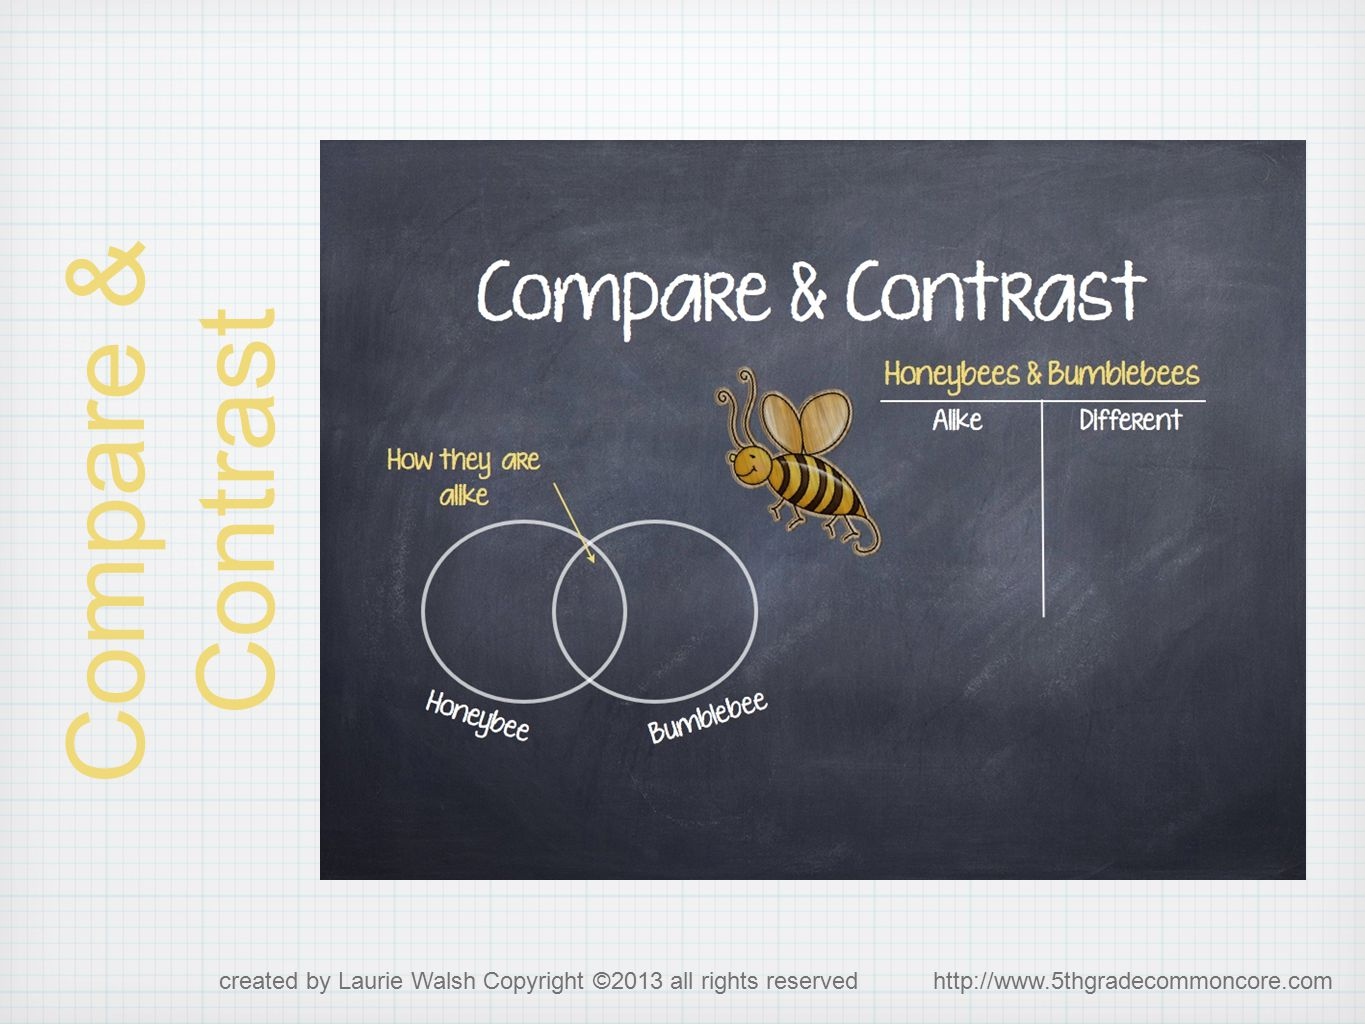 Compare & Contrast created by Laurie Walsh Copyright ©2013 all rights reserved http://www.5thgradecommoncore.com